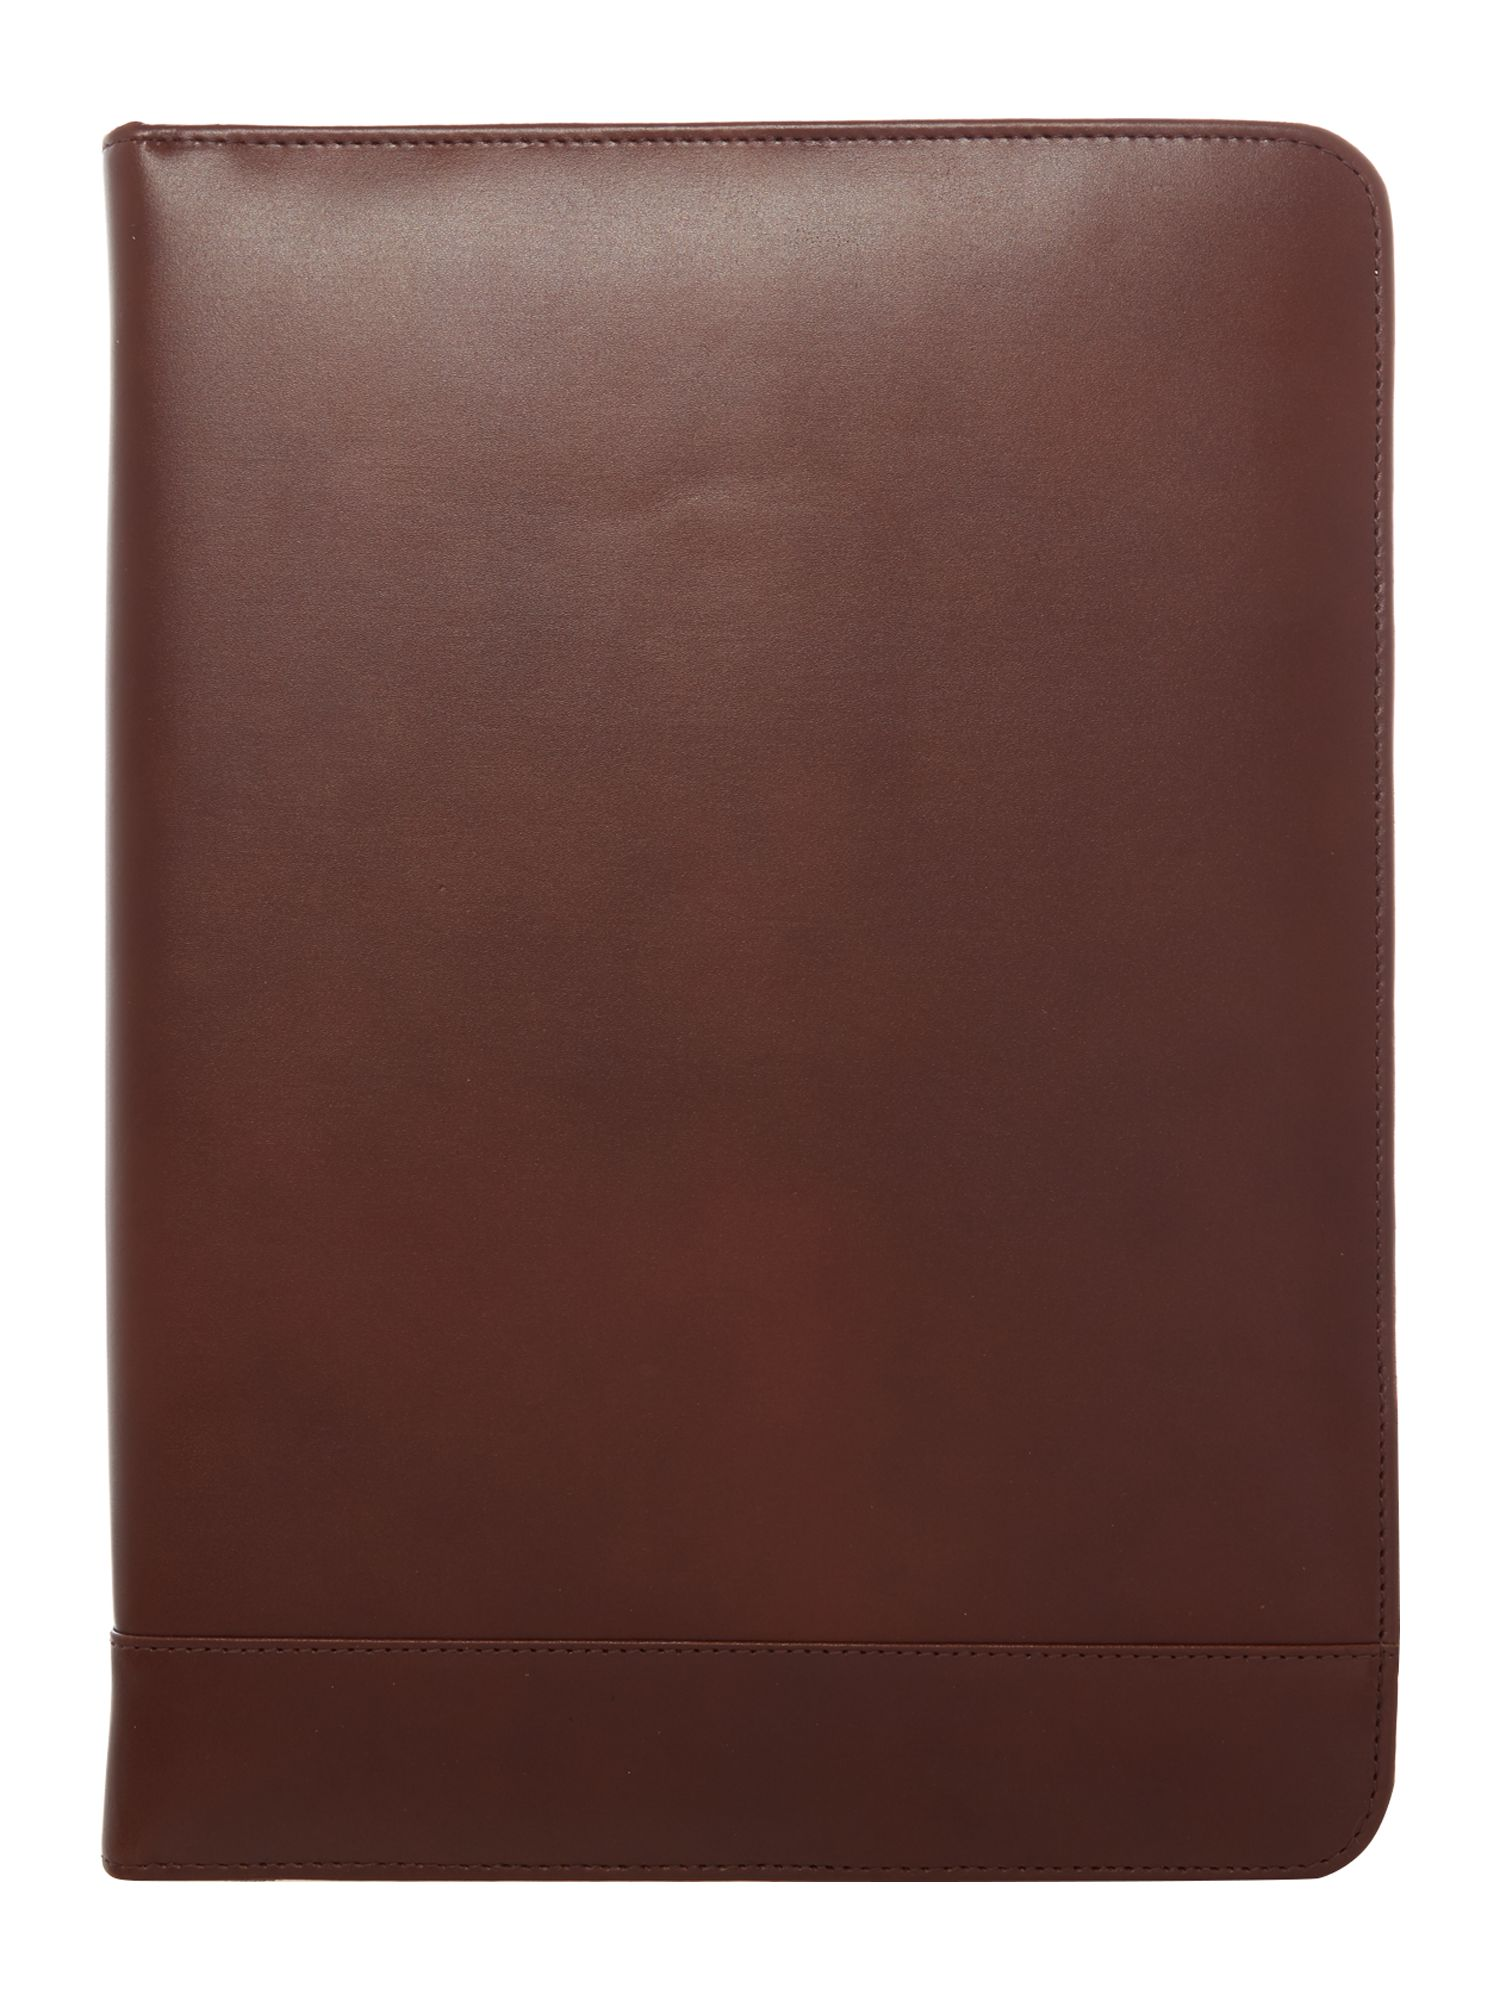 Howick Tan Leather Document Holder